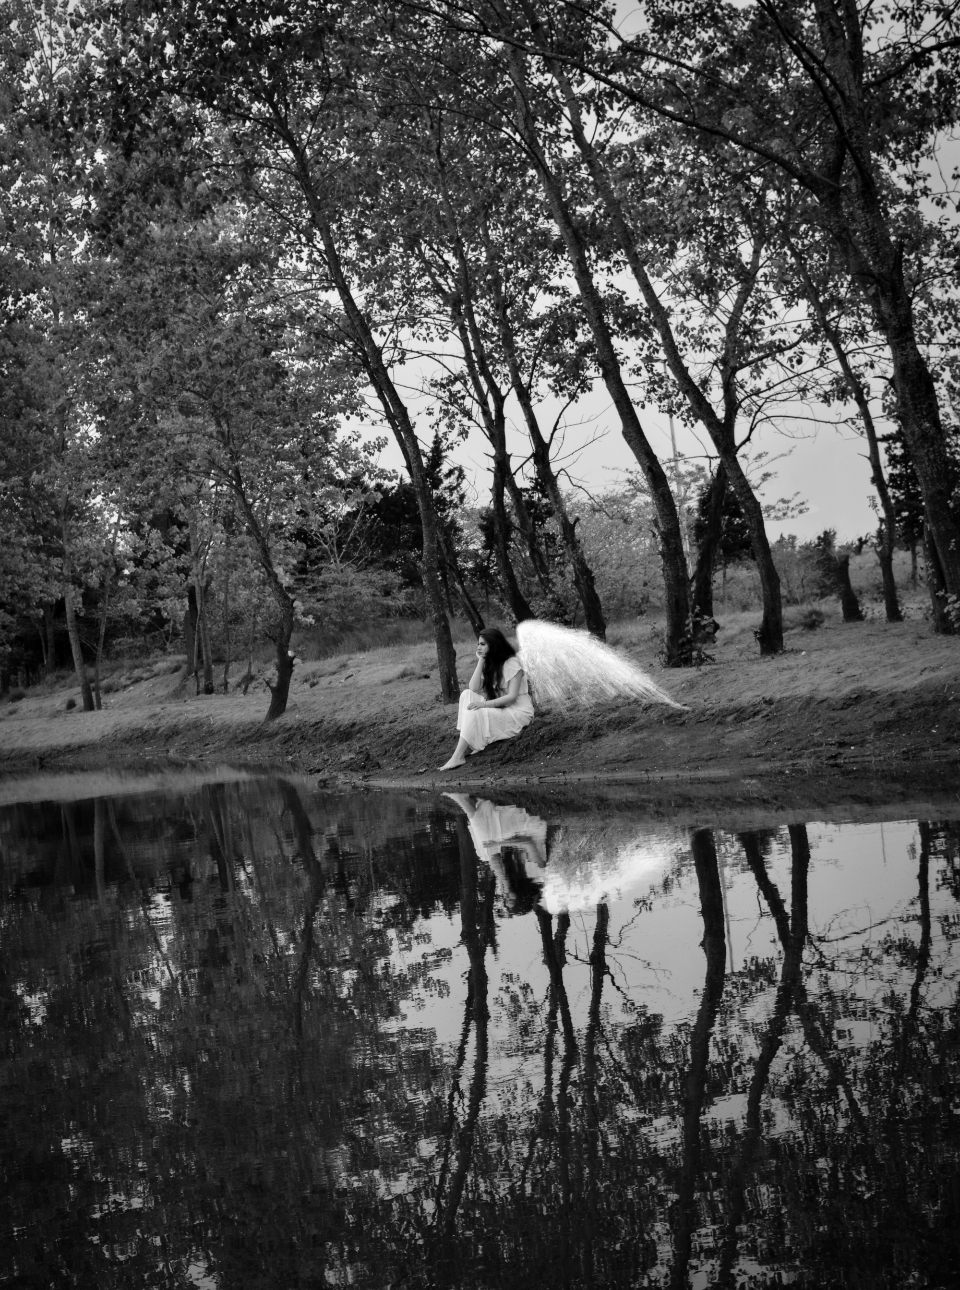 sad woman angel sitting outdoors female person trees water reflection contemplation thinking lonely alone wings black and white